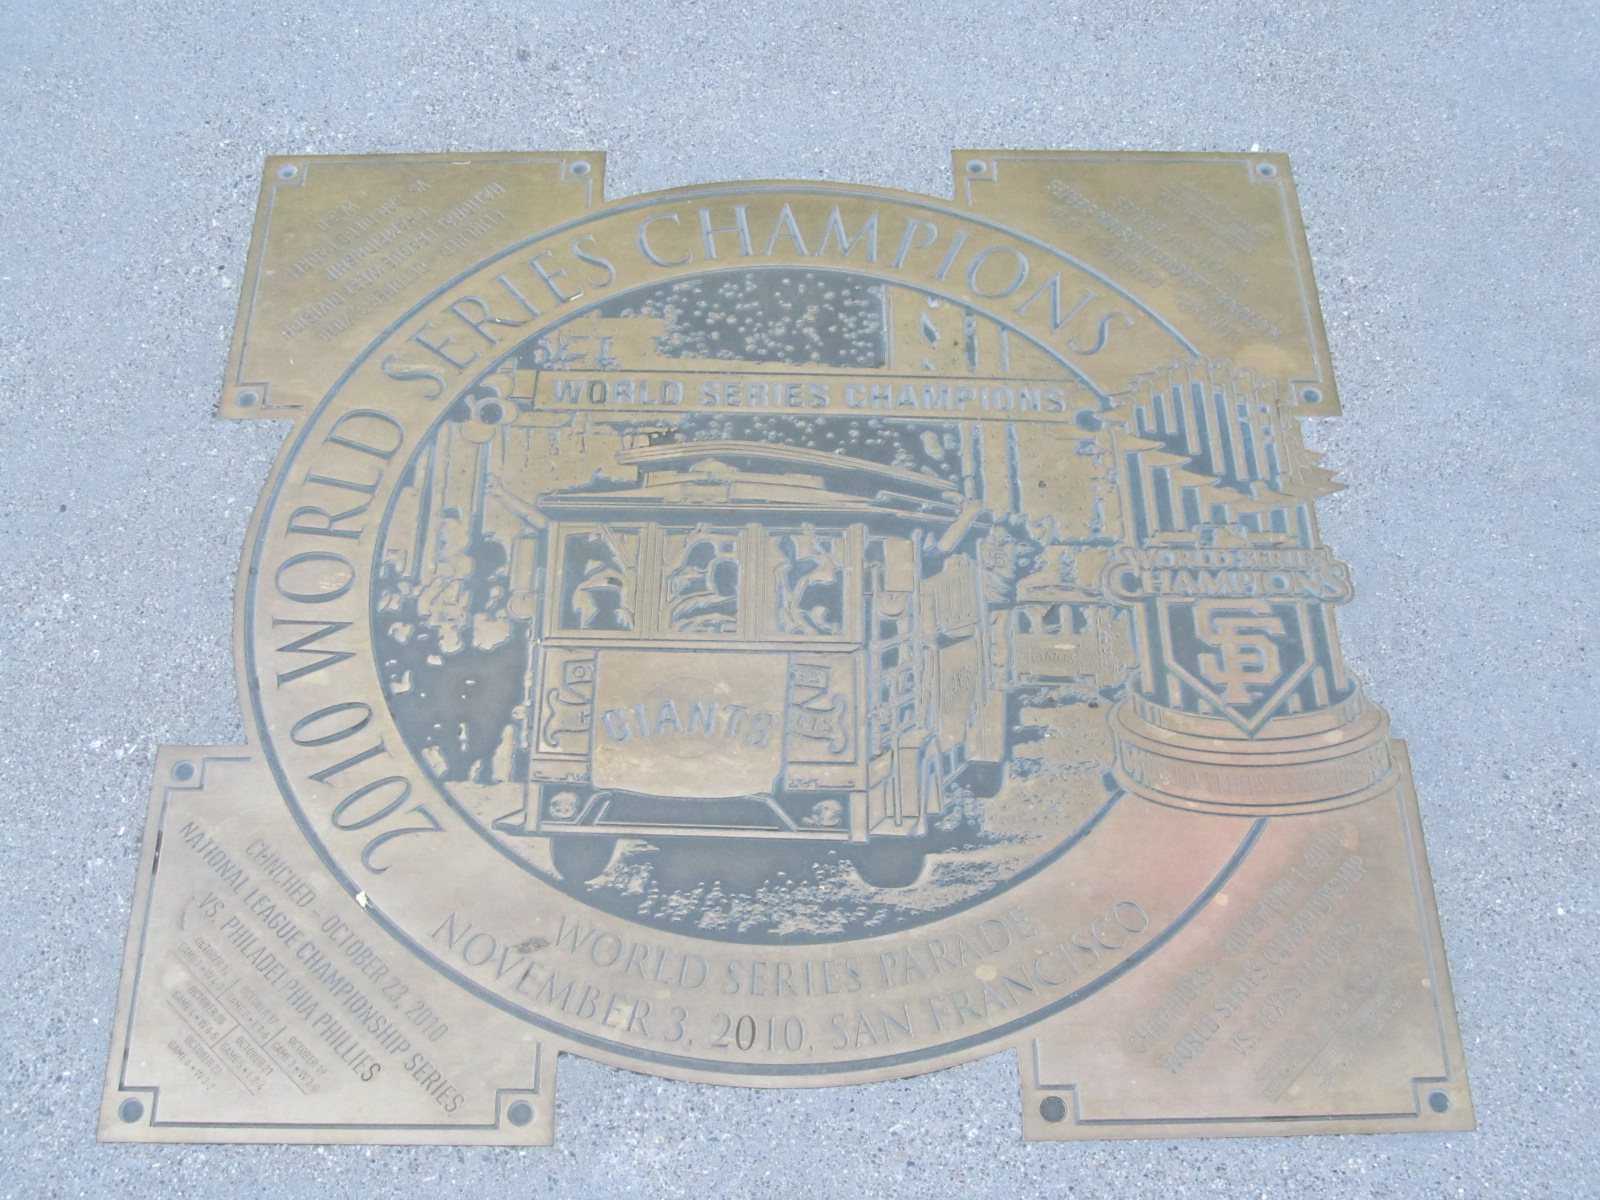 2010 World Series Parade Plaque